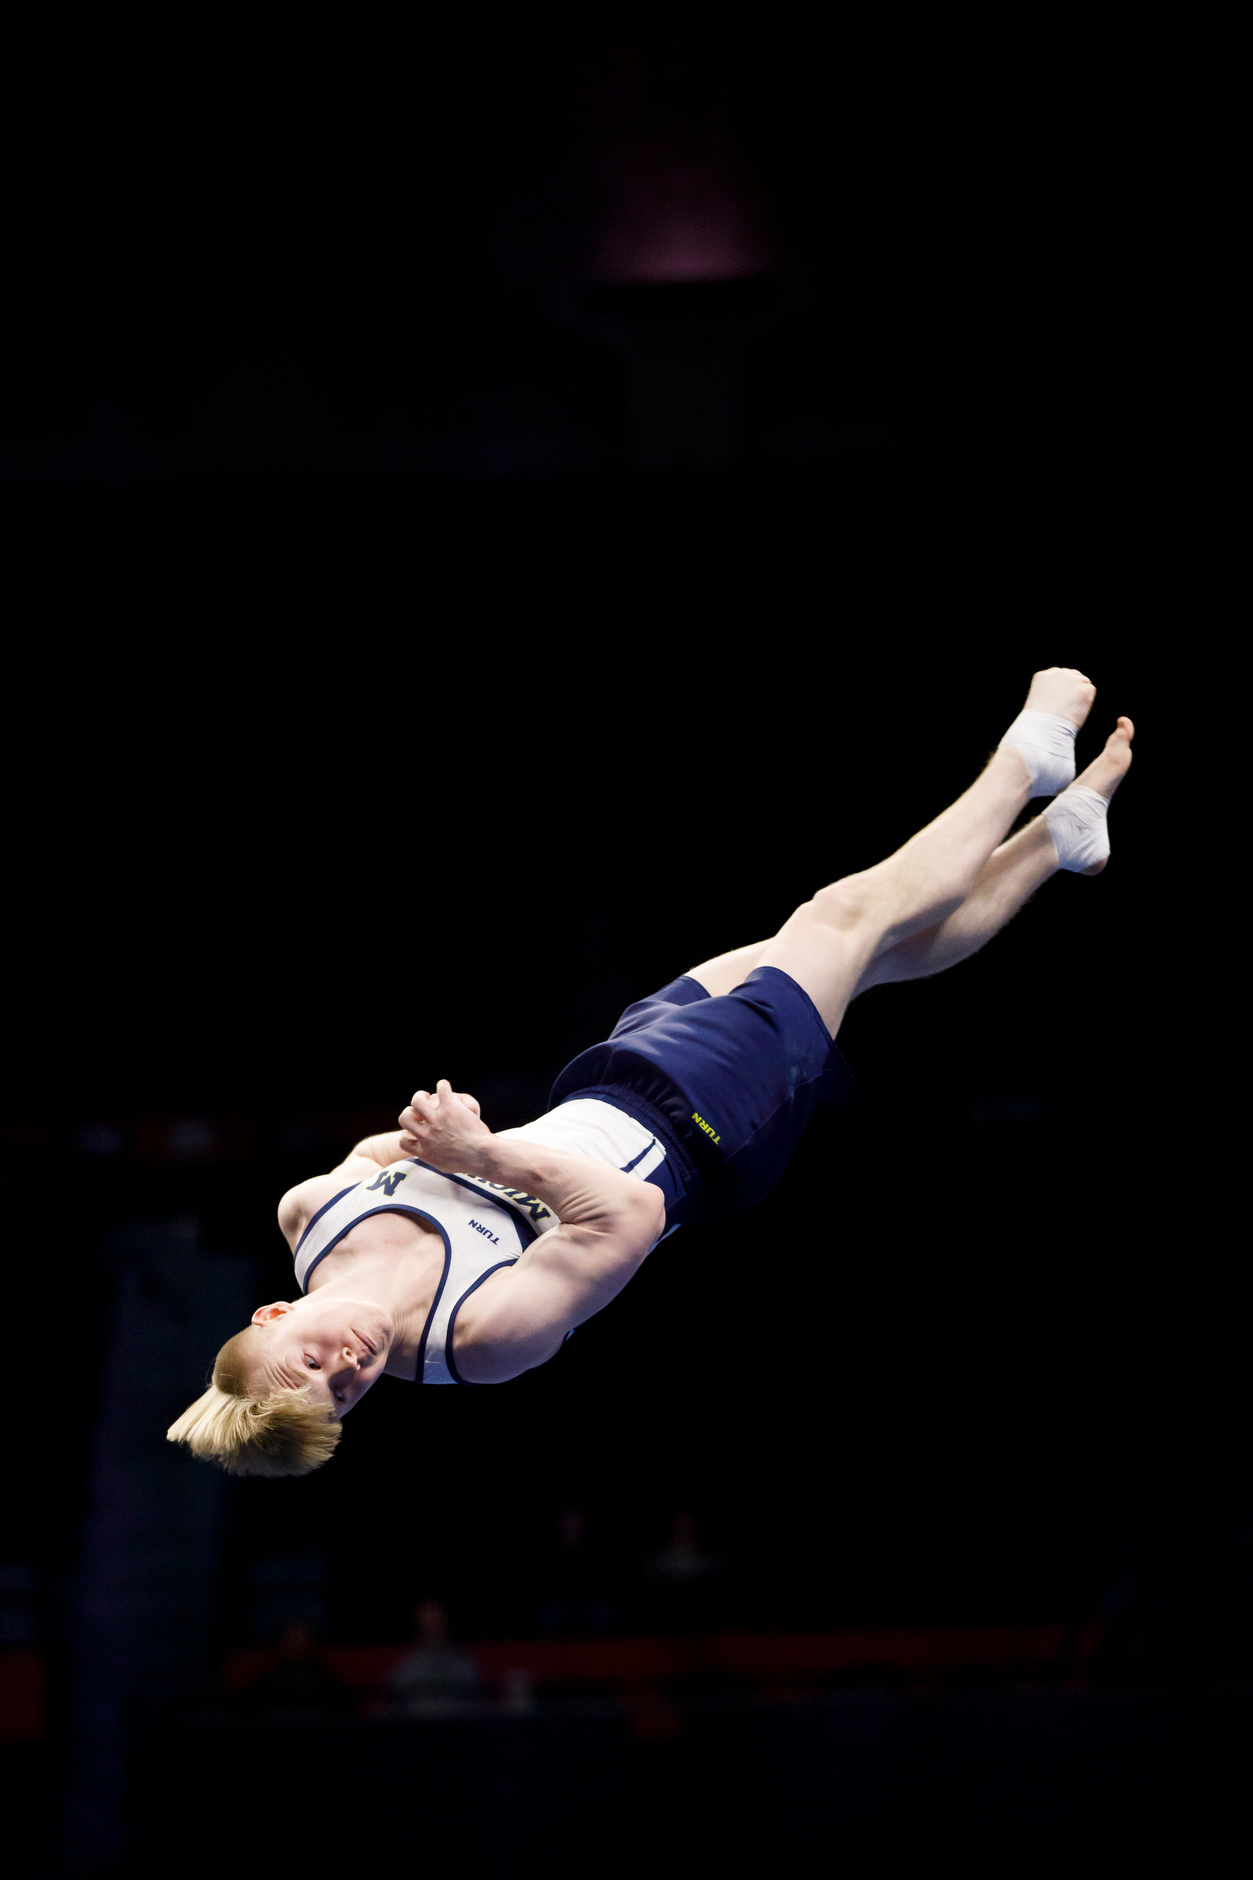 Michigan's Cameron Bock competes in the floor exercise at the NCAA Men's Gymnastics Championships on Friday, April 19, 2019, at the State Farm Center in Champaign, Illinois. (Photo by James Brosher)